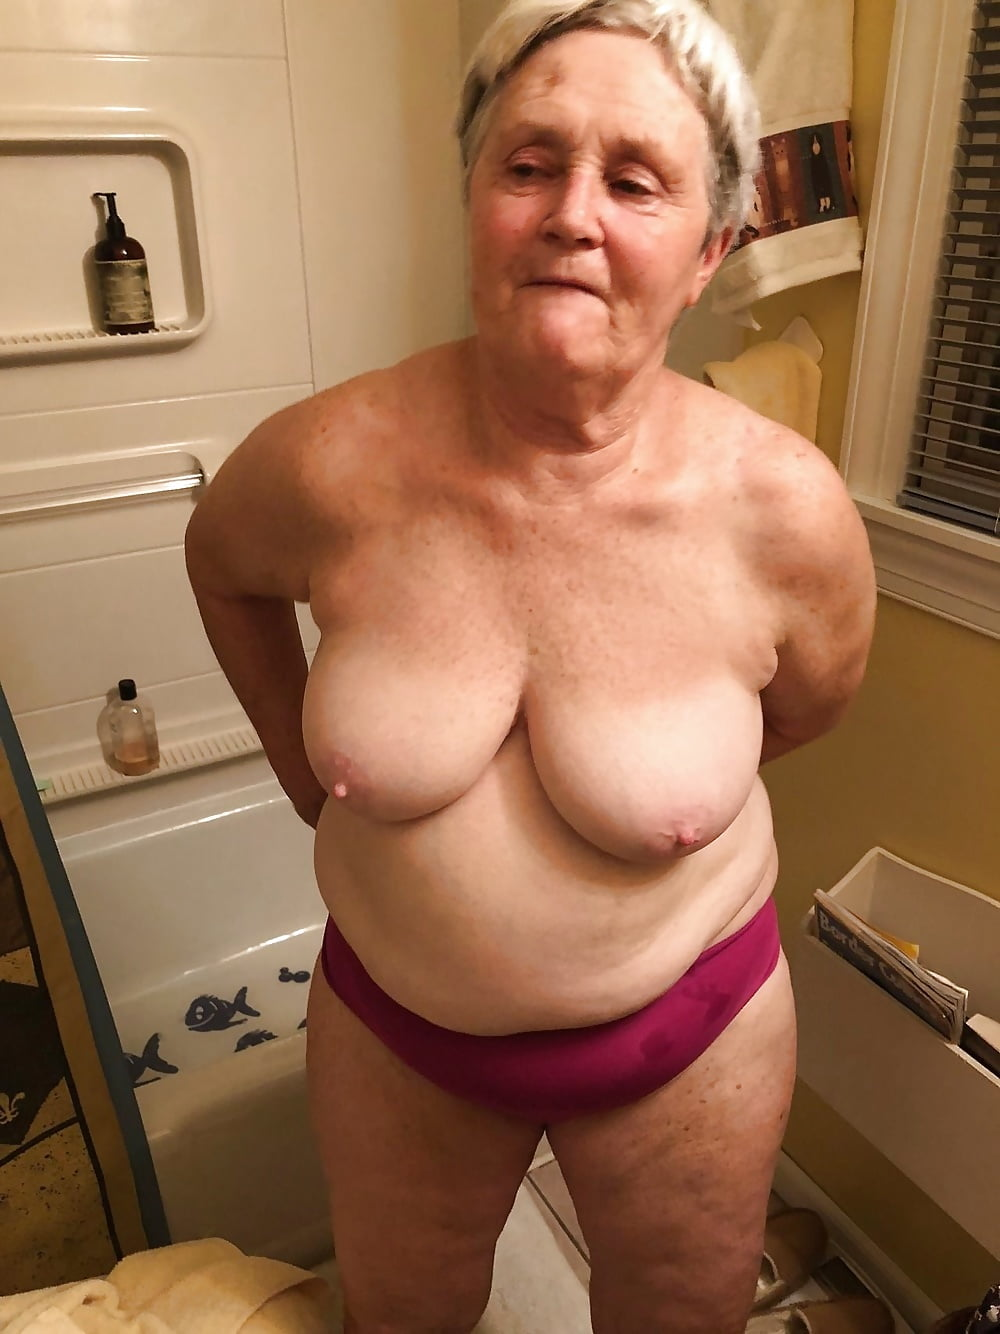 Irish grannies naked pictures, movies black suspenders